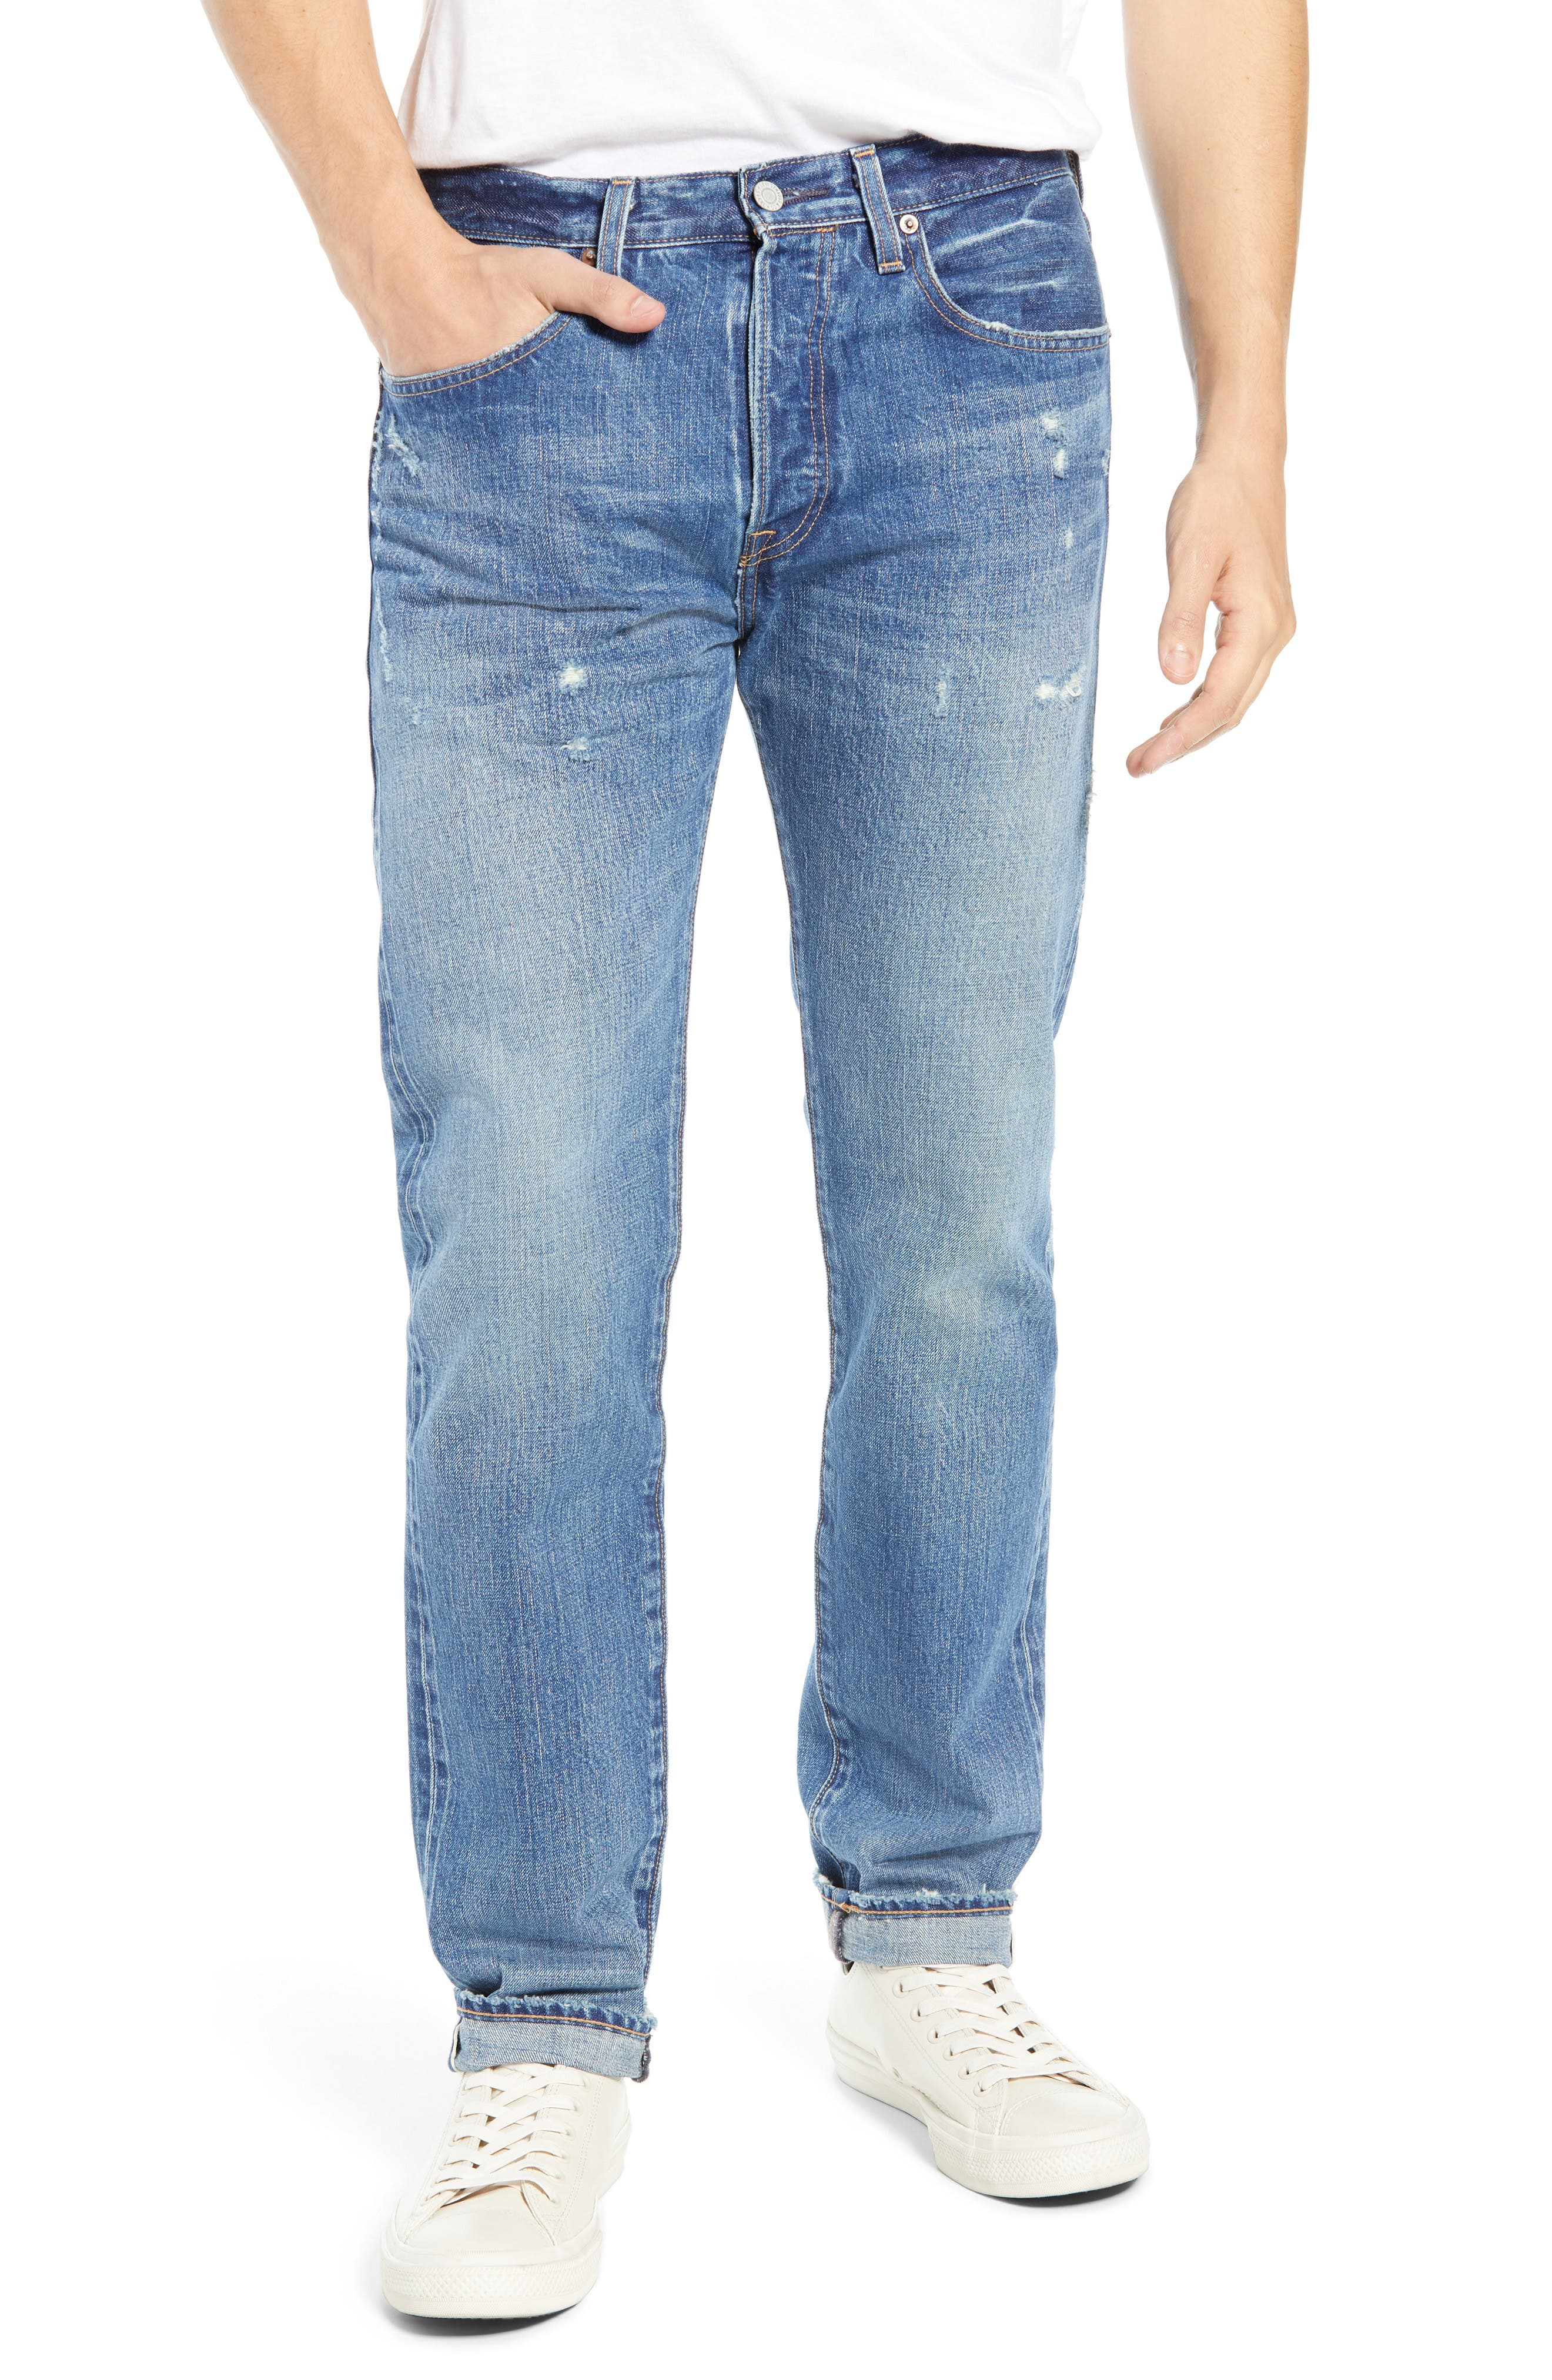 Levi's<sup>®</sup> Made & Crafted 501<sup>™</sup> Slim Fit Tapered Jeans,                             Main thumbnail 1, color,                             FOREVER